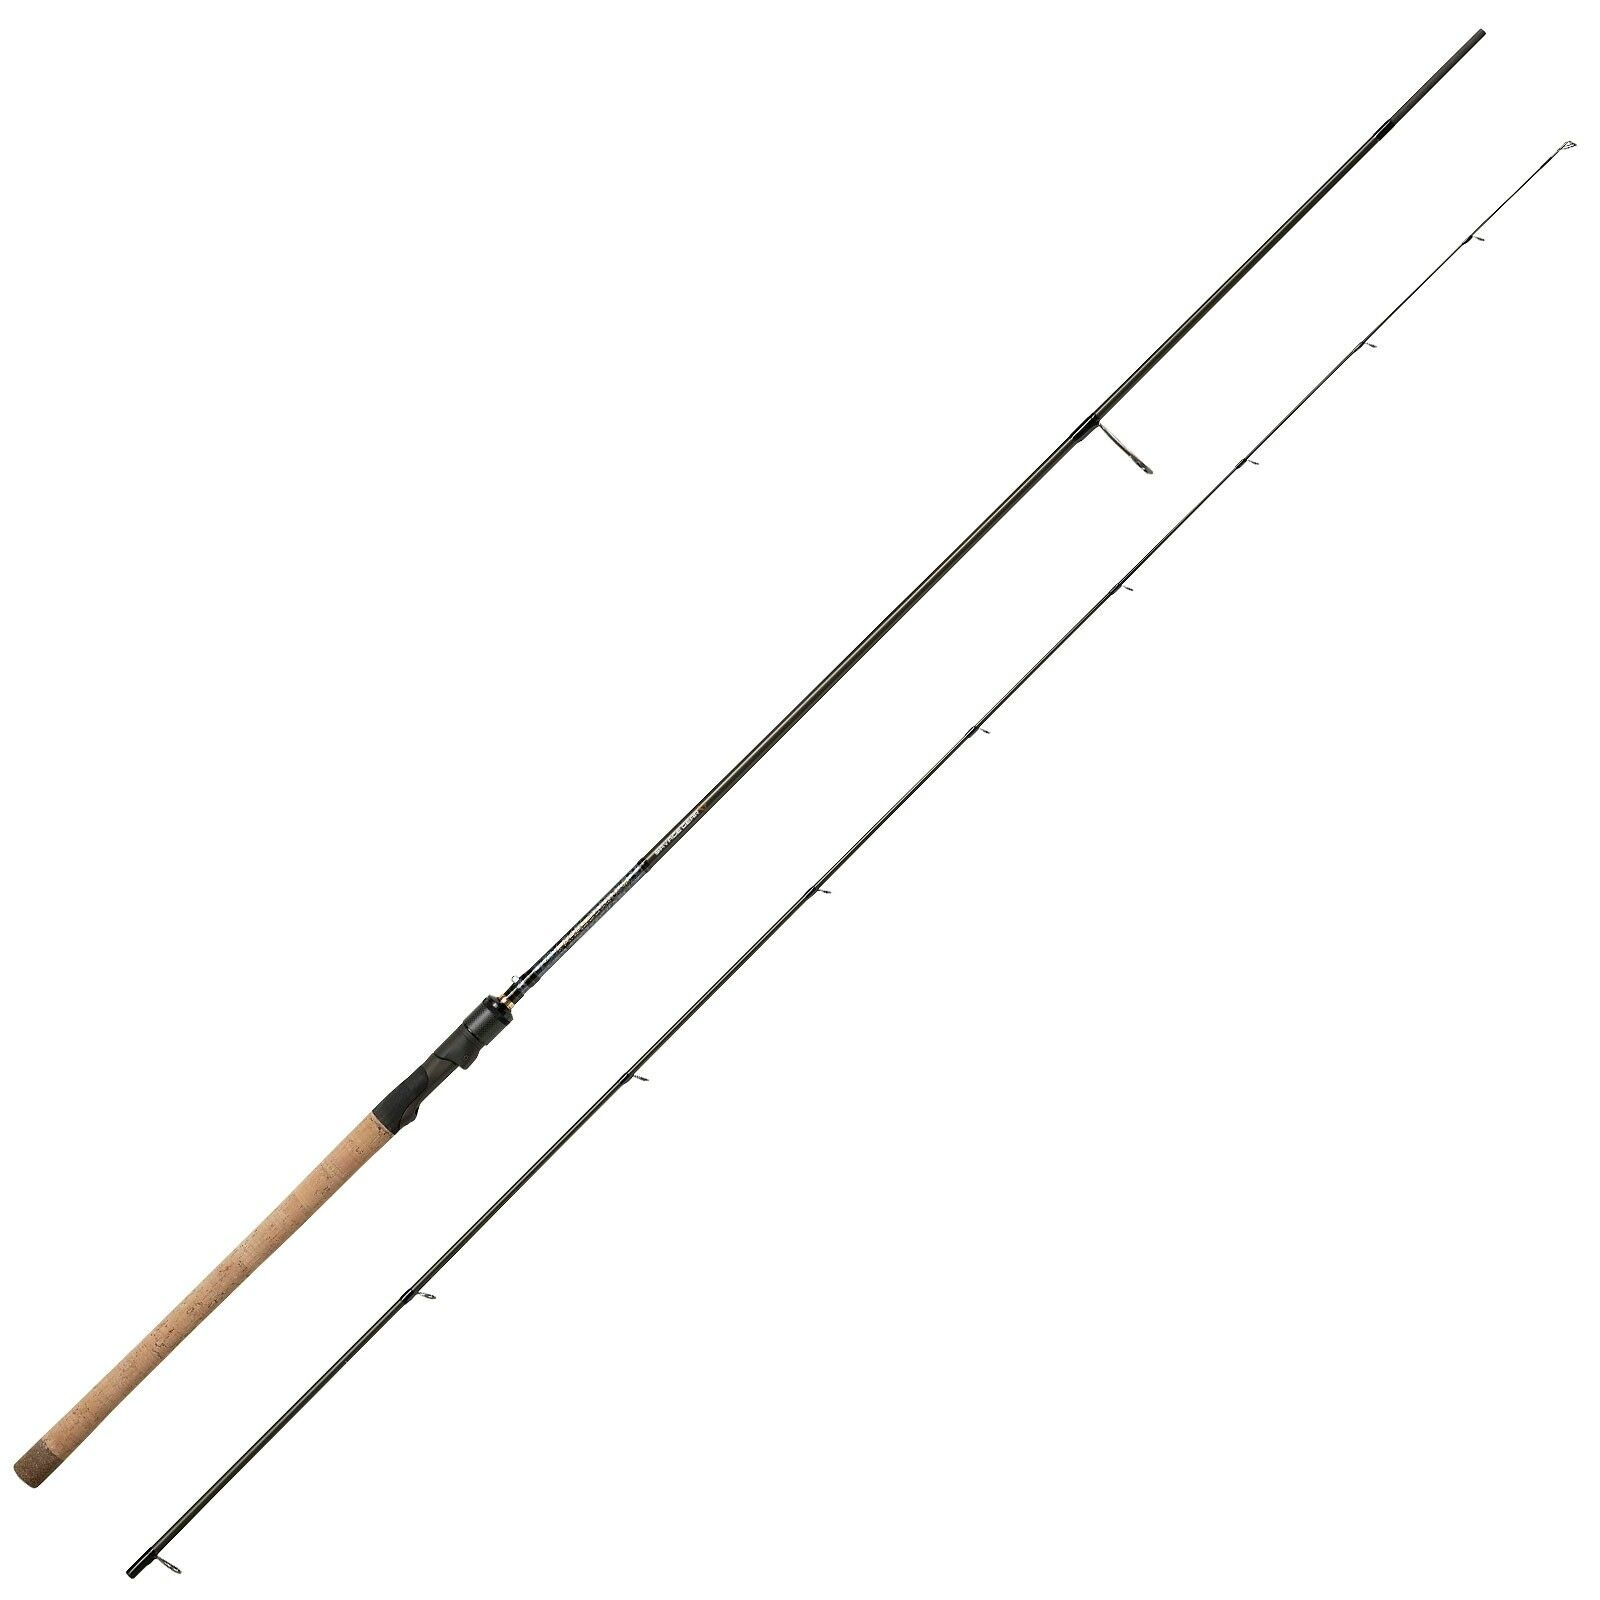 SAVAGE GEAR FISHING POLE ALLROUND Rod – Parabellum CCS 3,07m 12-32g 2 PCS